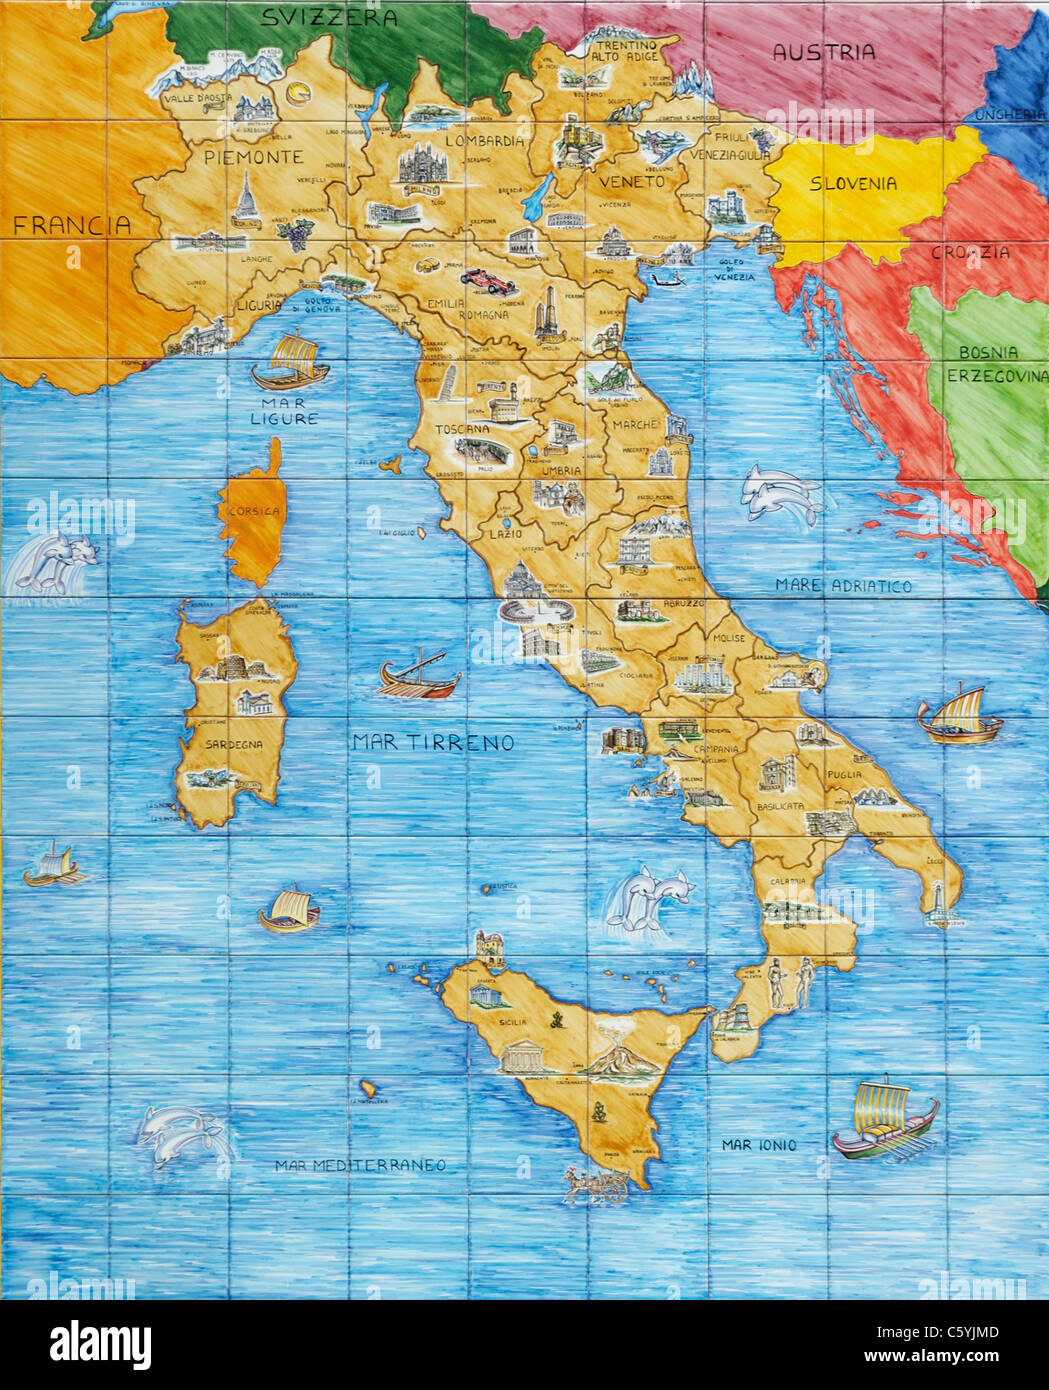 Italy map in ceramic tiles - Stock Image